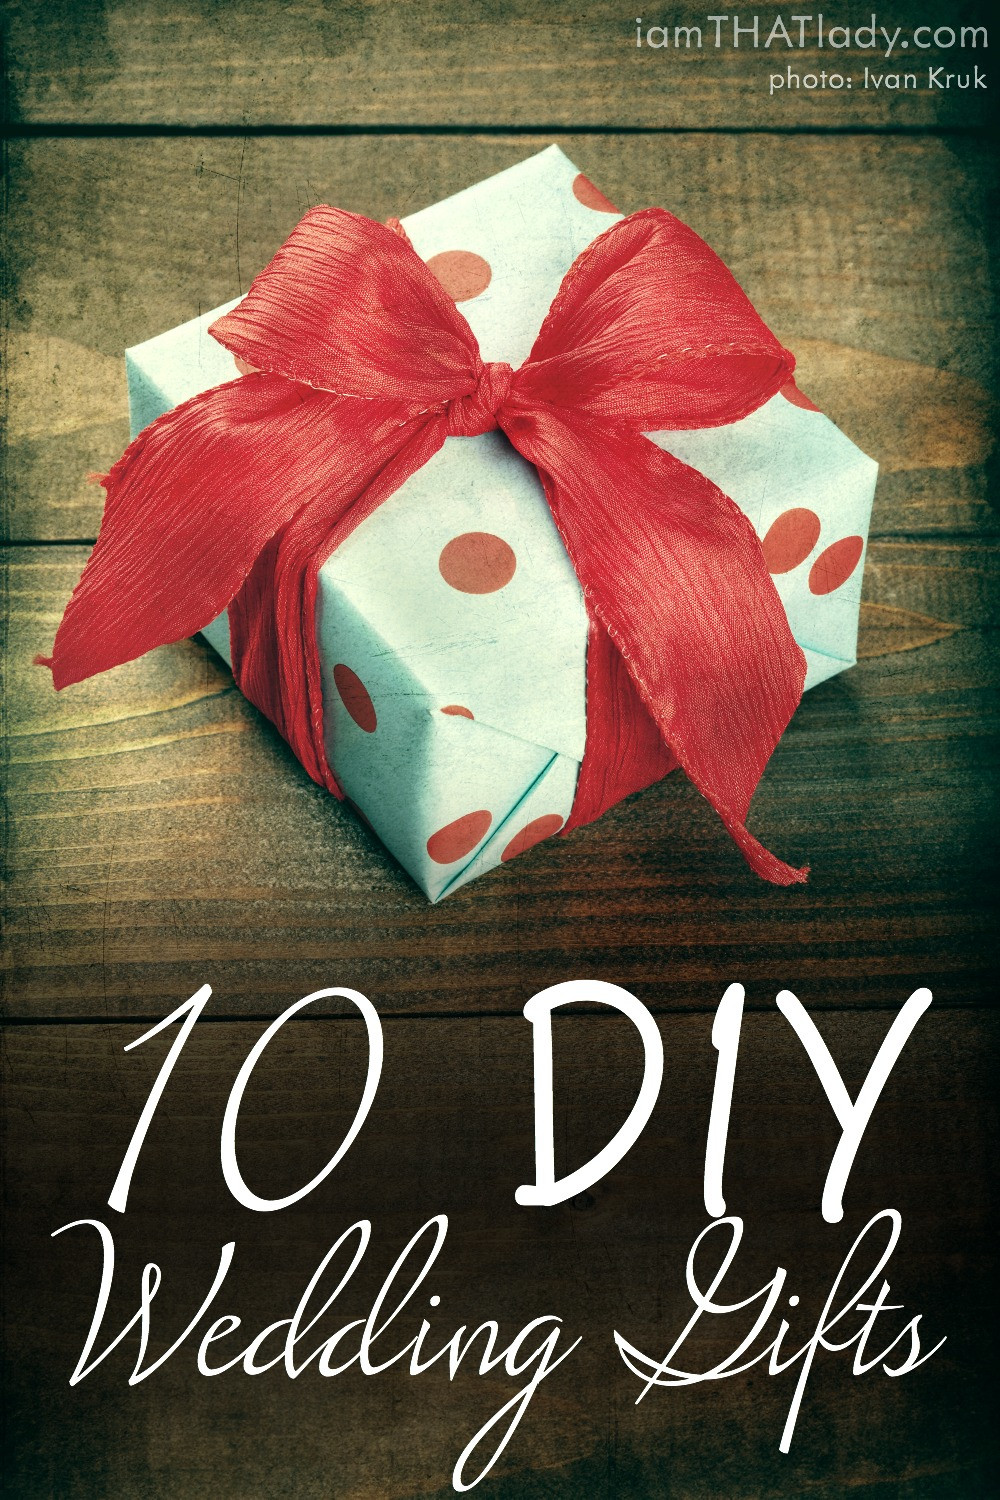 Best ideas about DIY Wedding Gifts . Save or Pin 10 DIY Wedding Gifts Lauren Greutman Now.